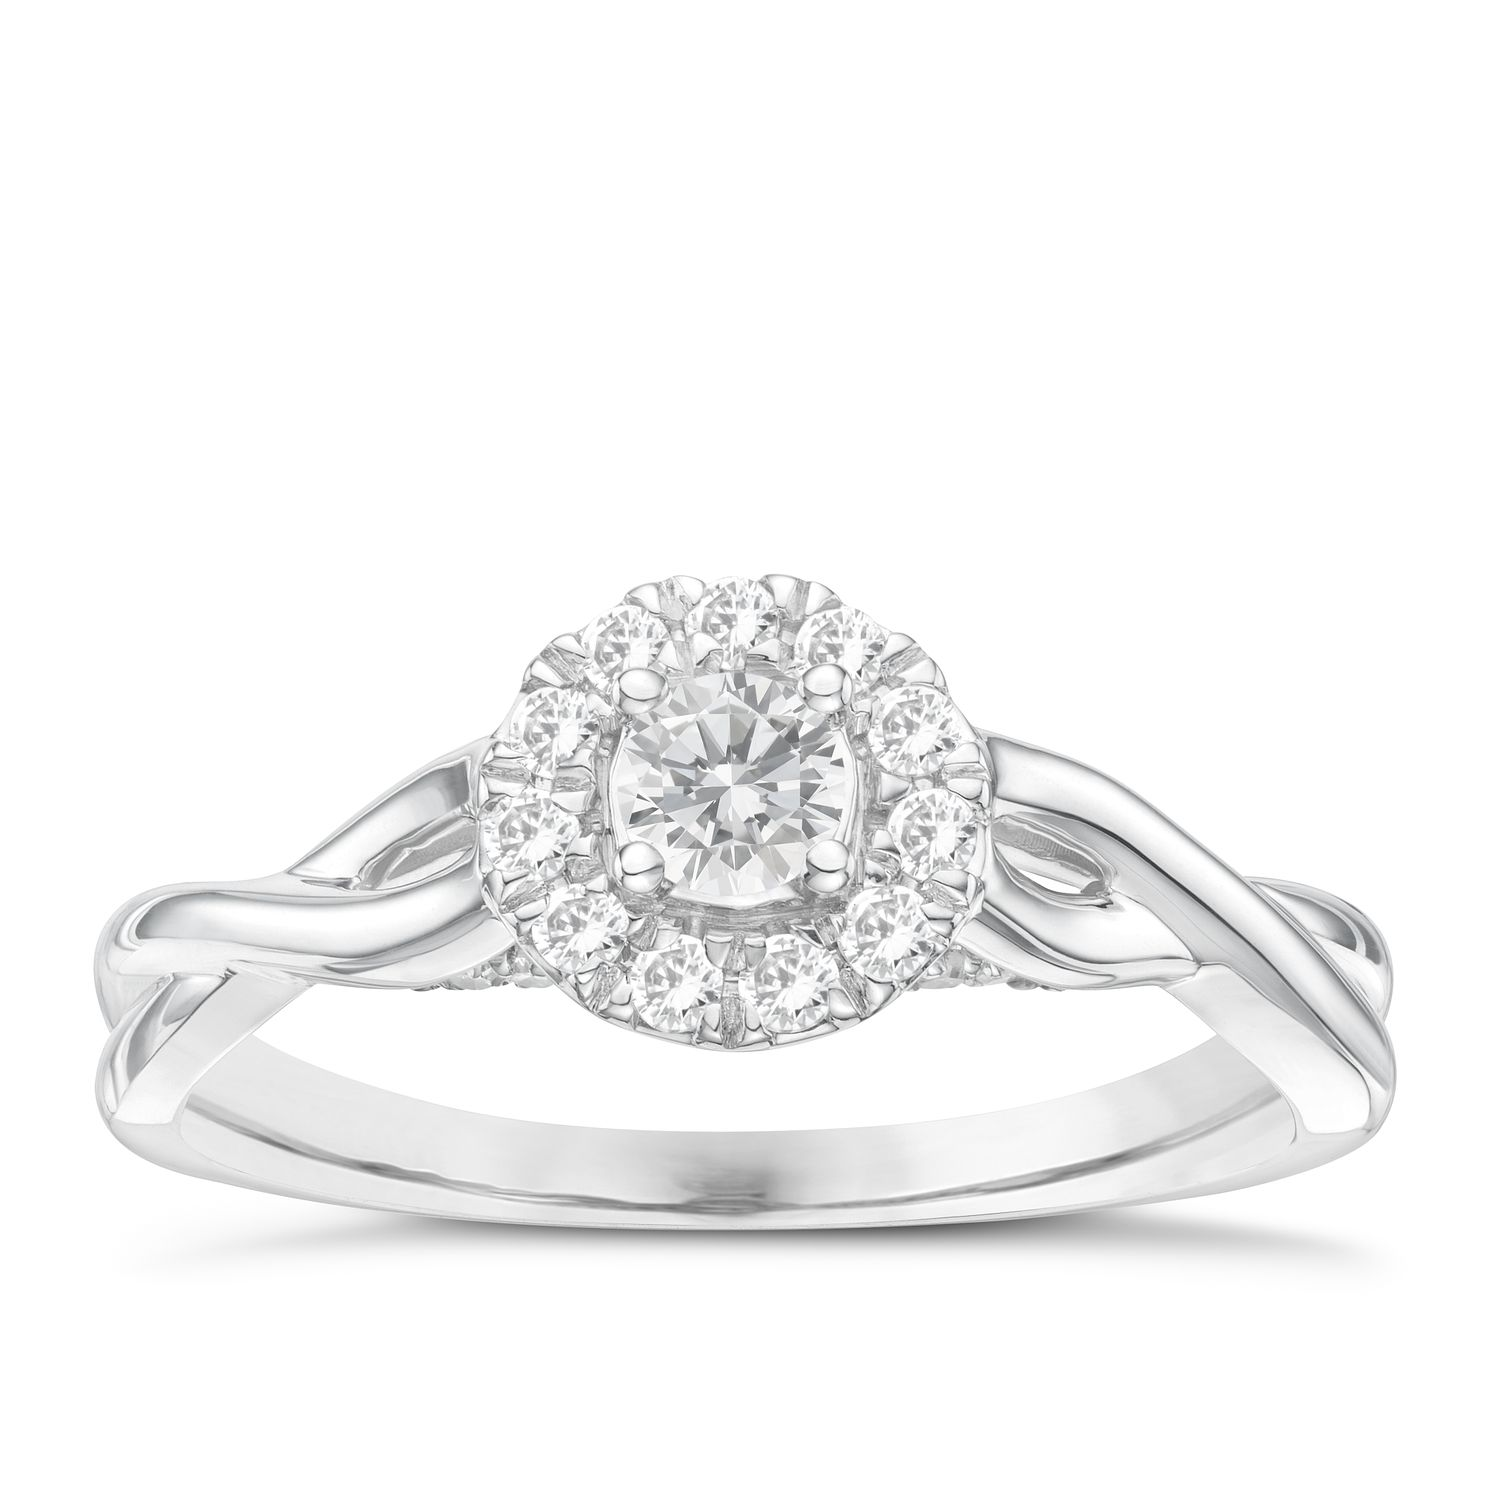 9ct White Gold 1/3ct Diamond Solitaire Ring - Product number 6994172